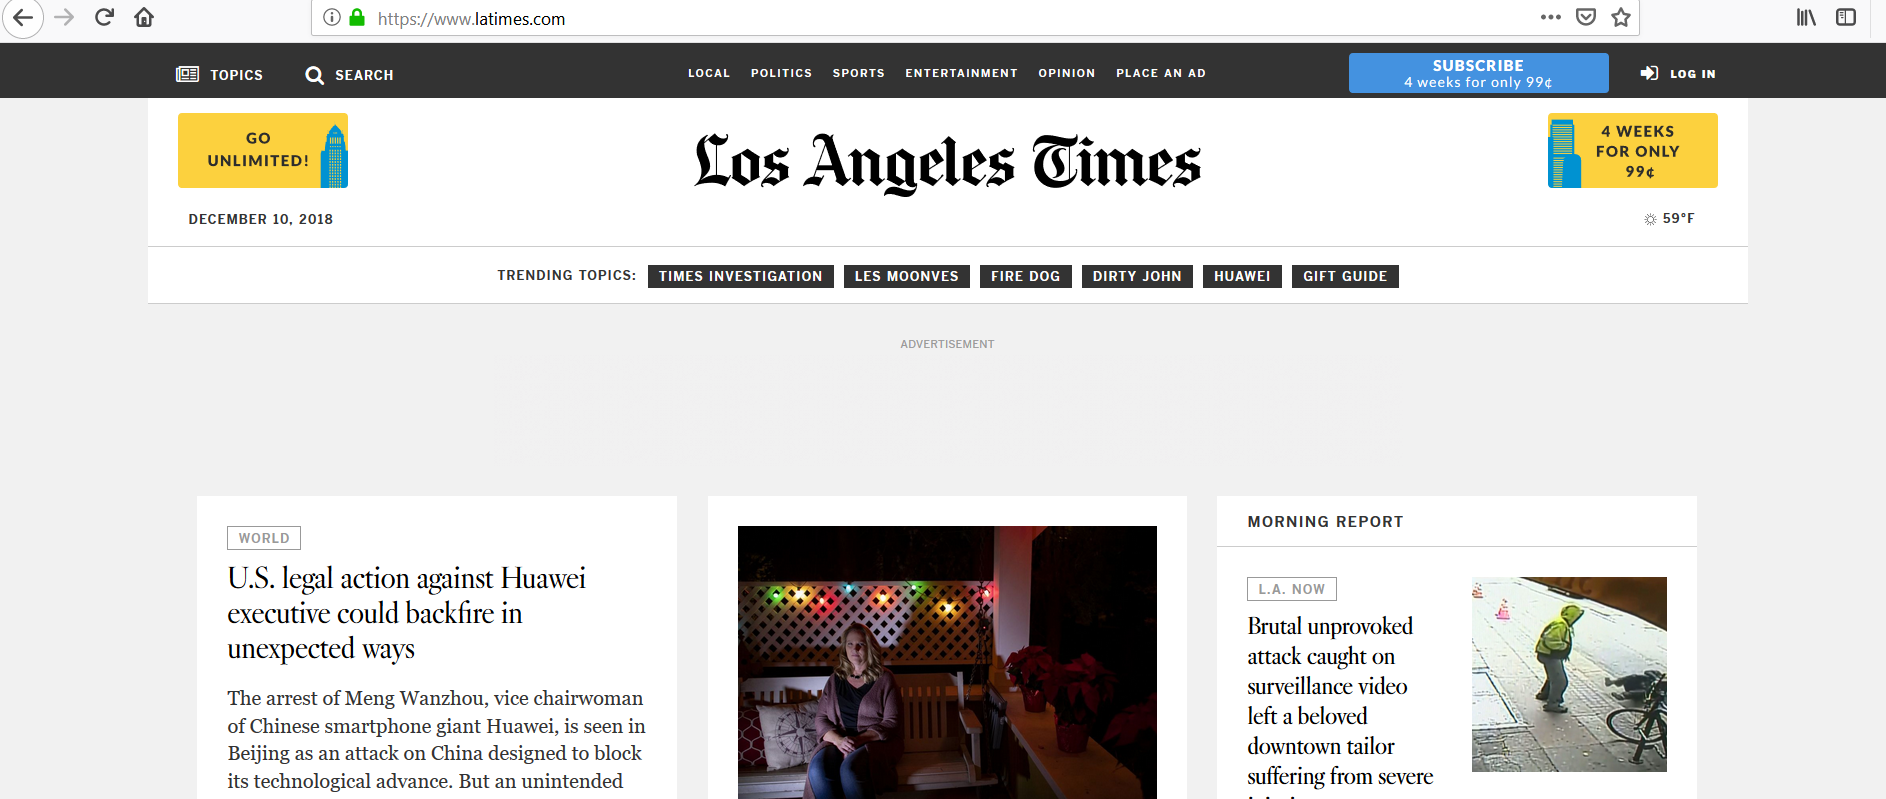 guest post on Los Angeles Times Latimes Latimes. com ...